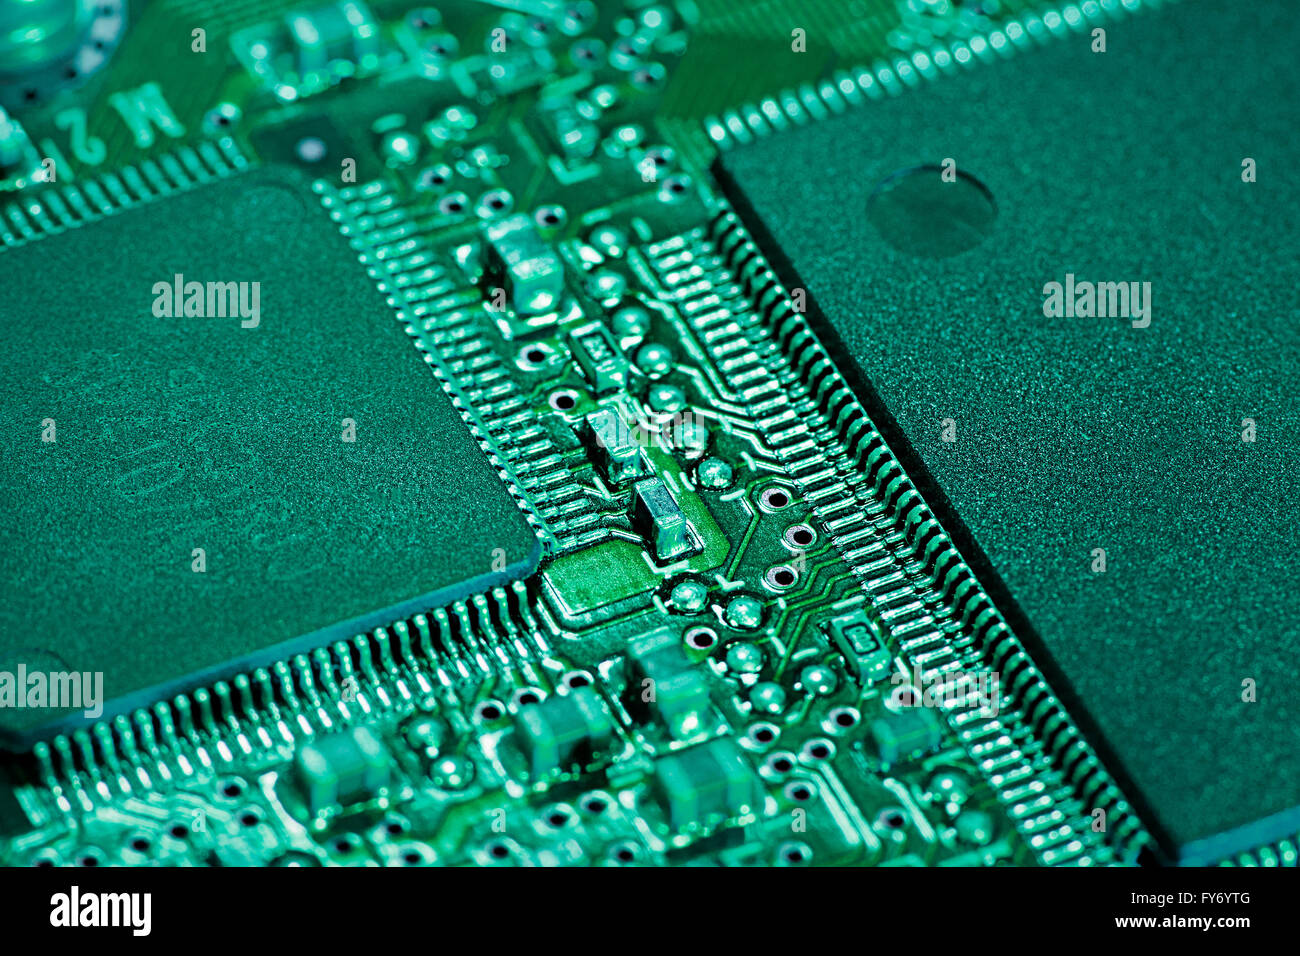 Computer silicon chip with circuitry Stock Photo: 102801120 - Alamy